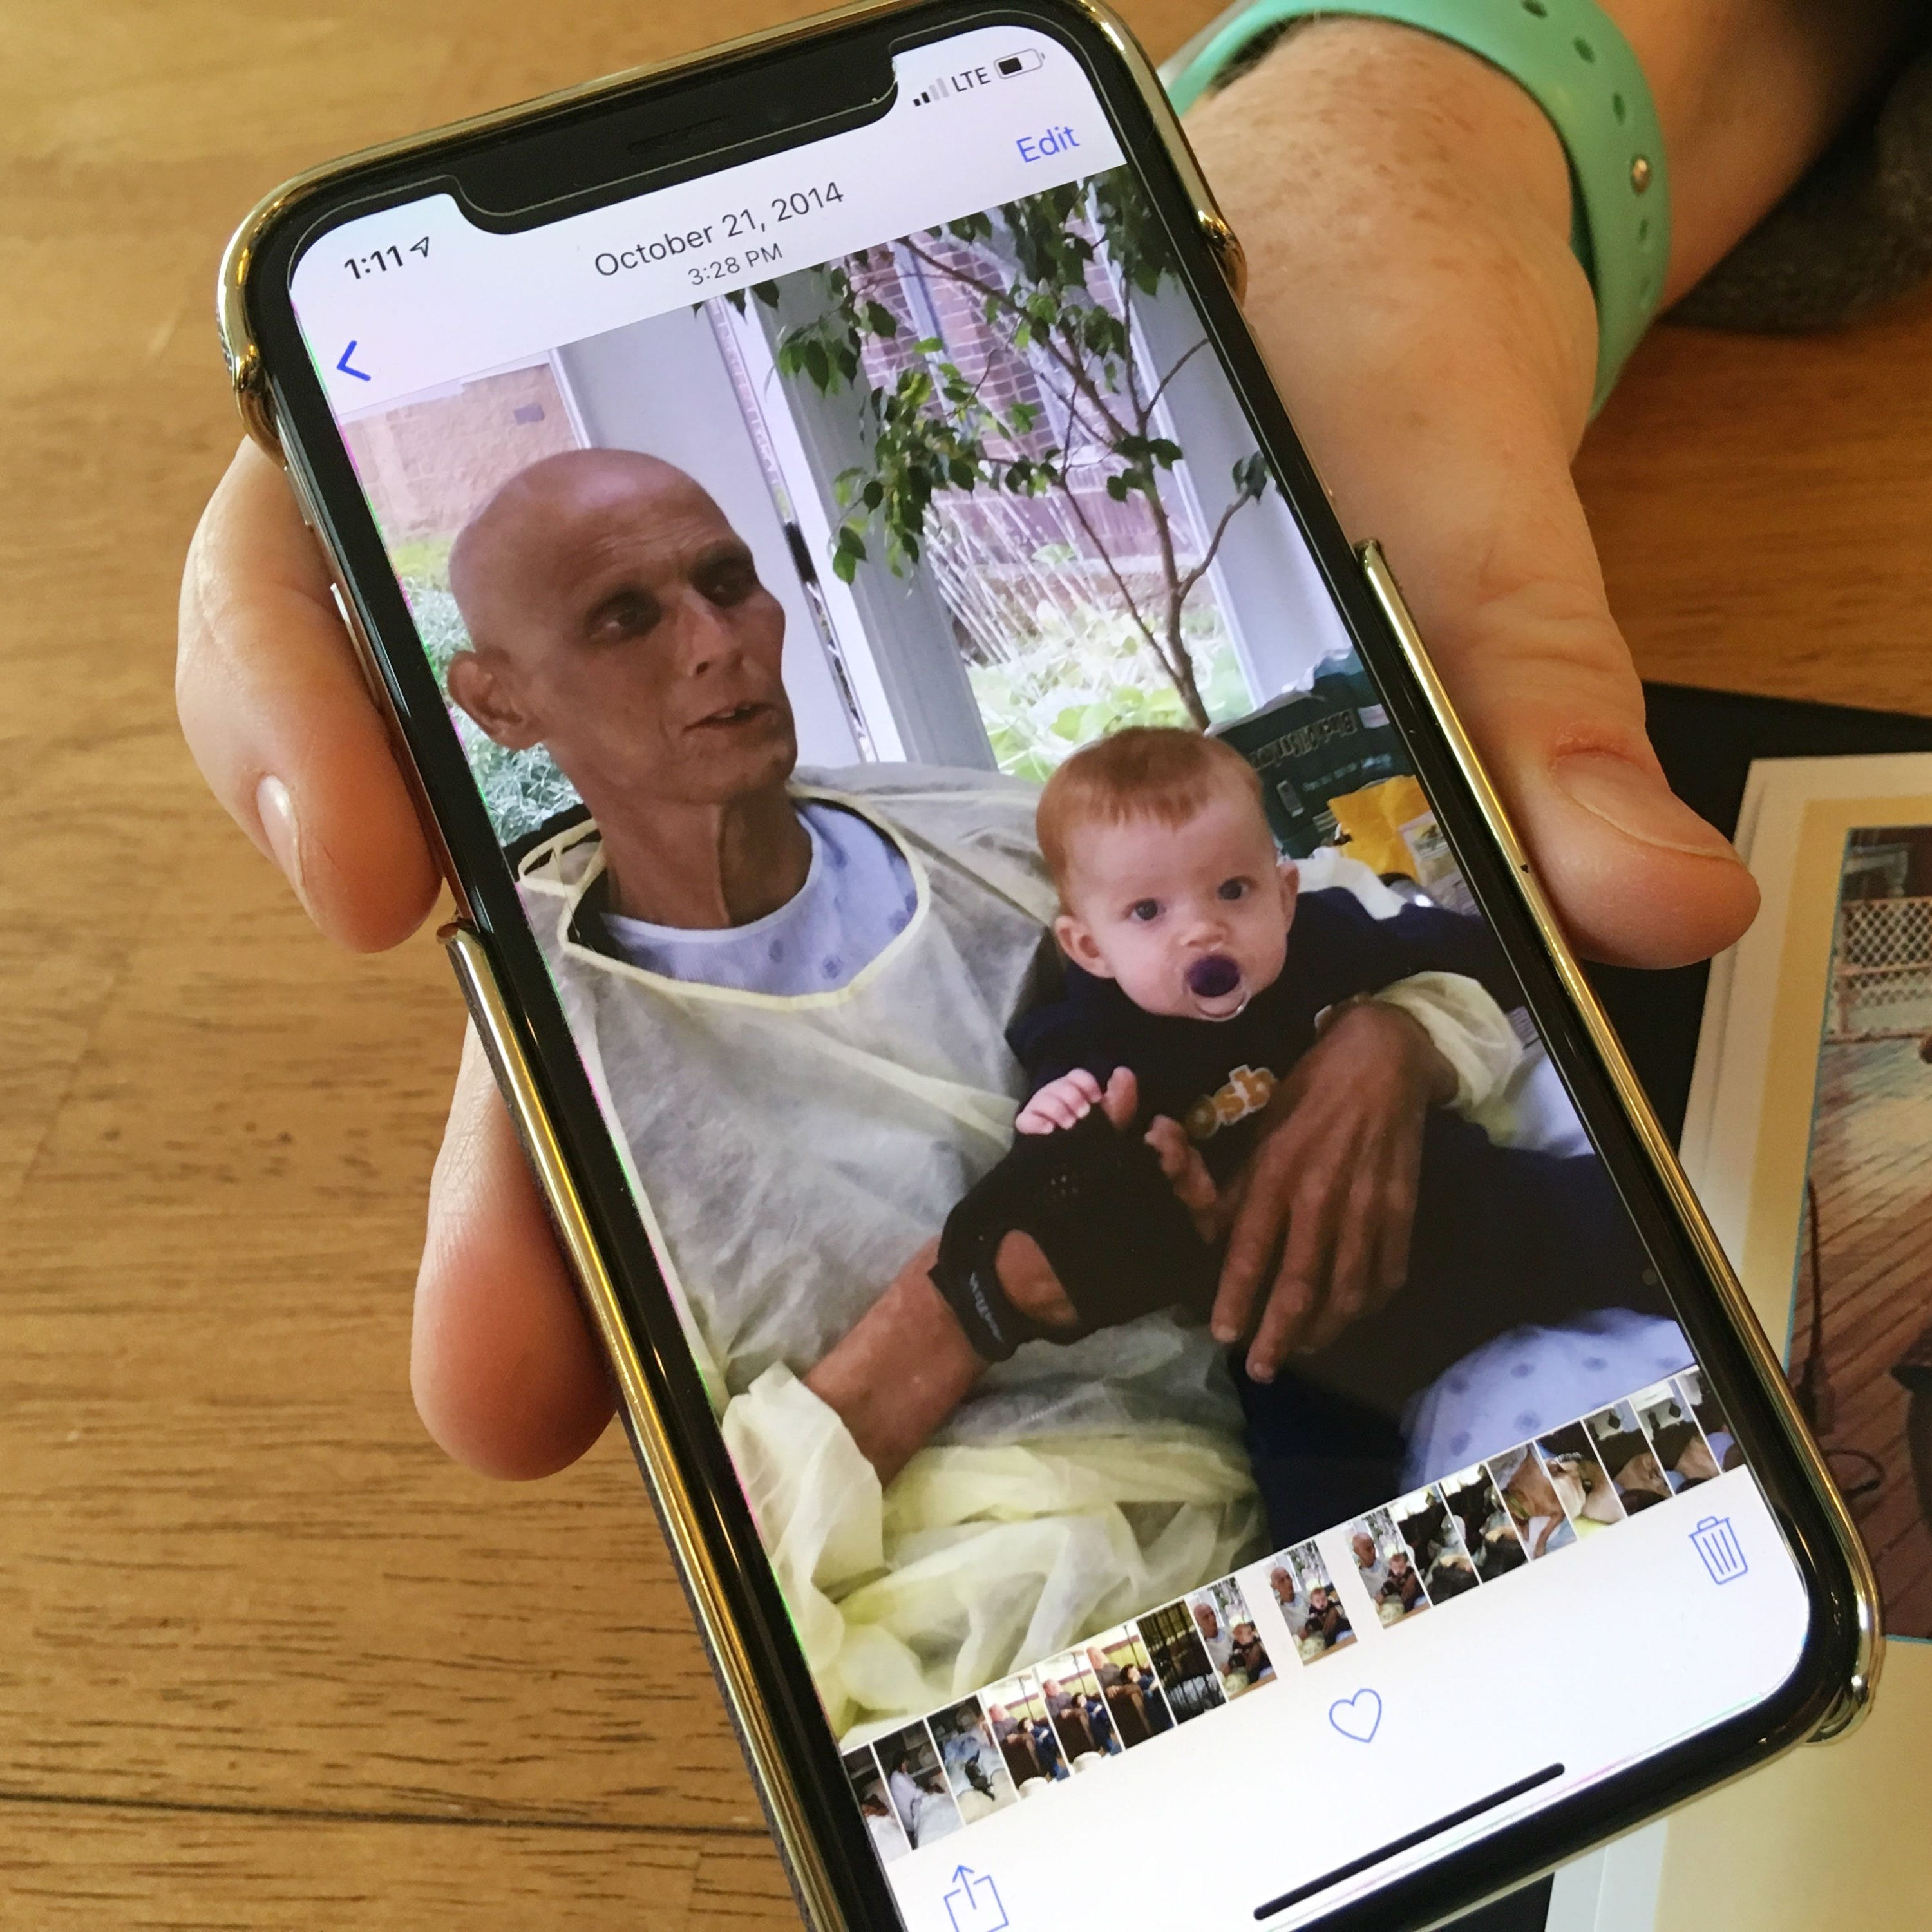 Janice Hutt shows a picture saved on her phone of her brother Bobby Hutt in the days before he died from cancer in October 2014 holding his lawyer's son